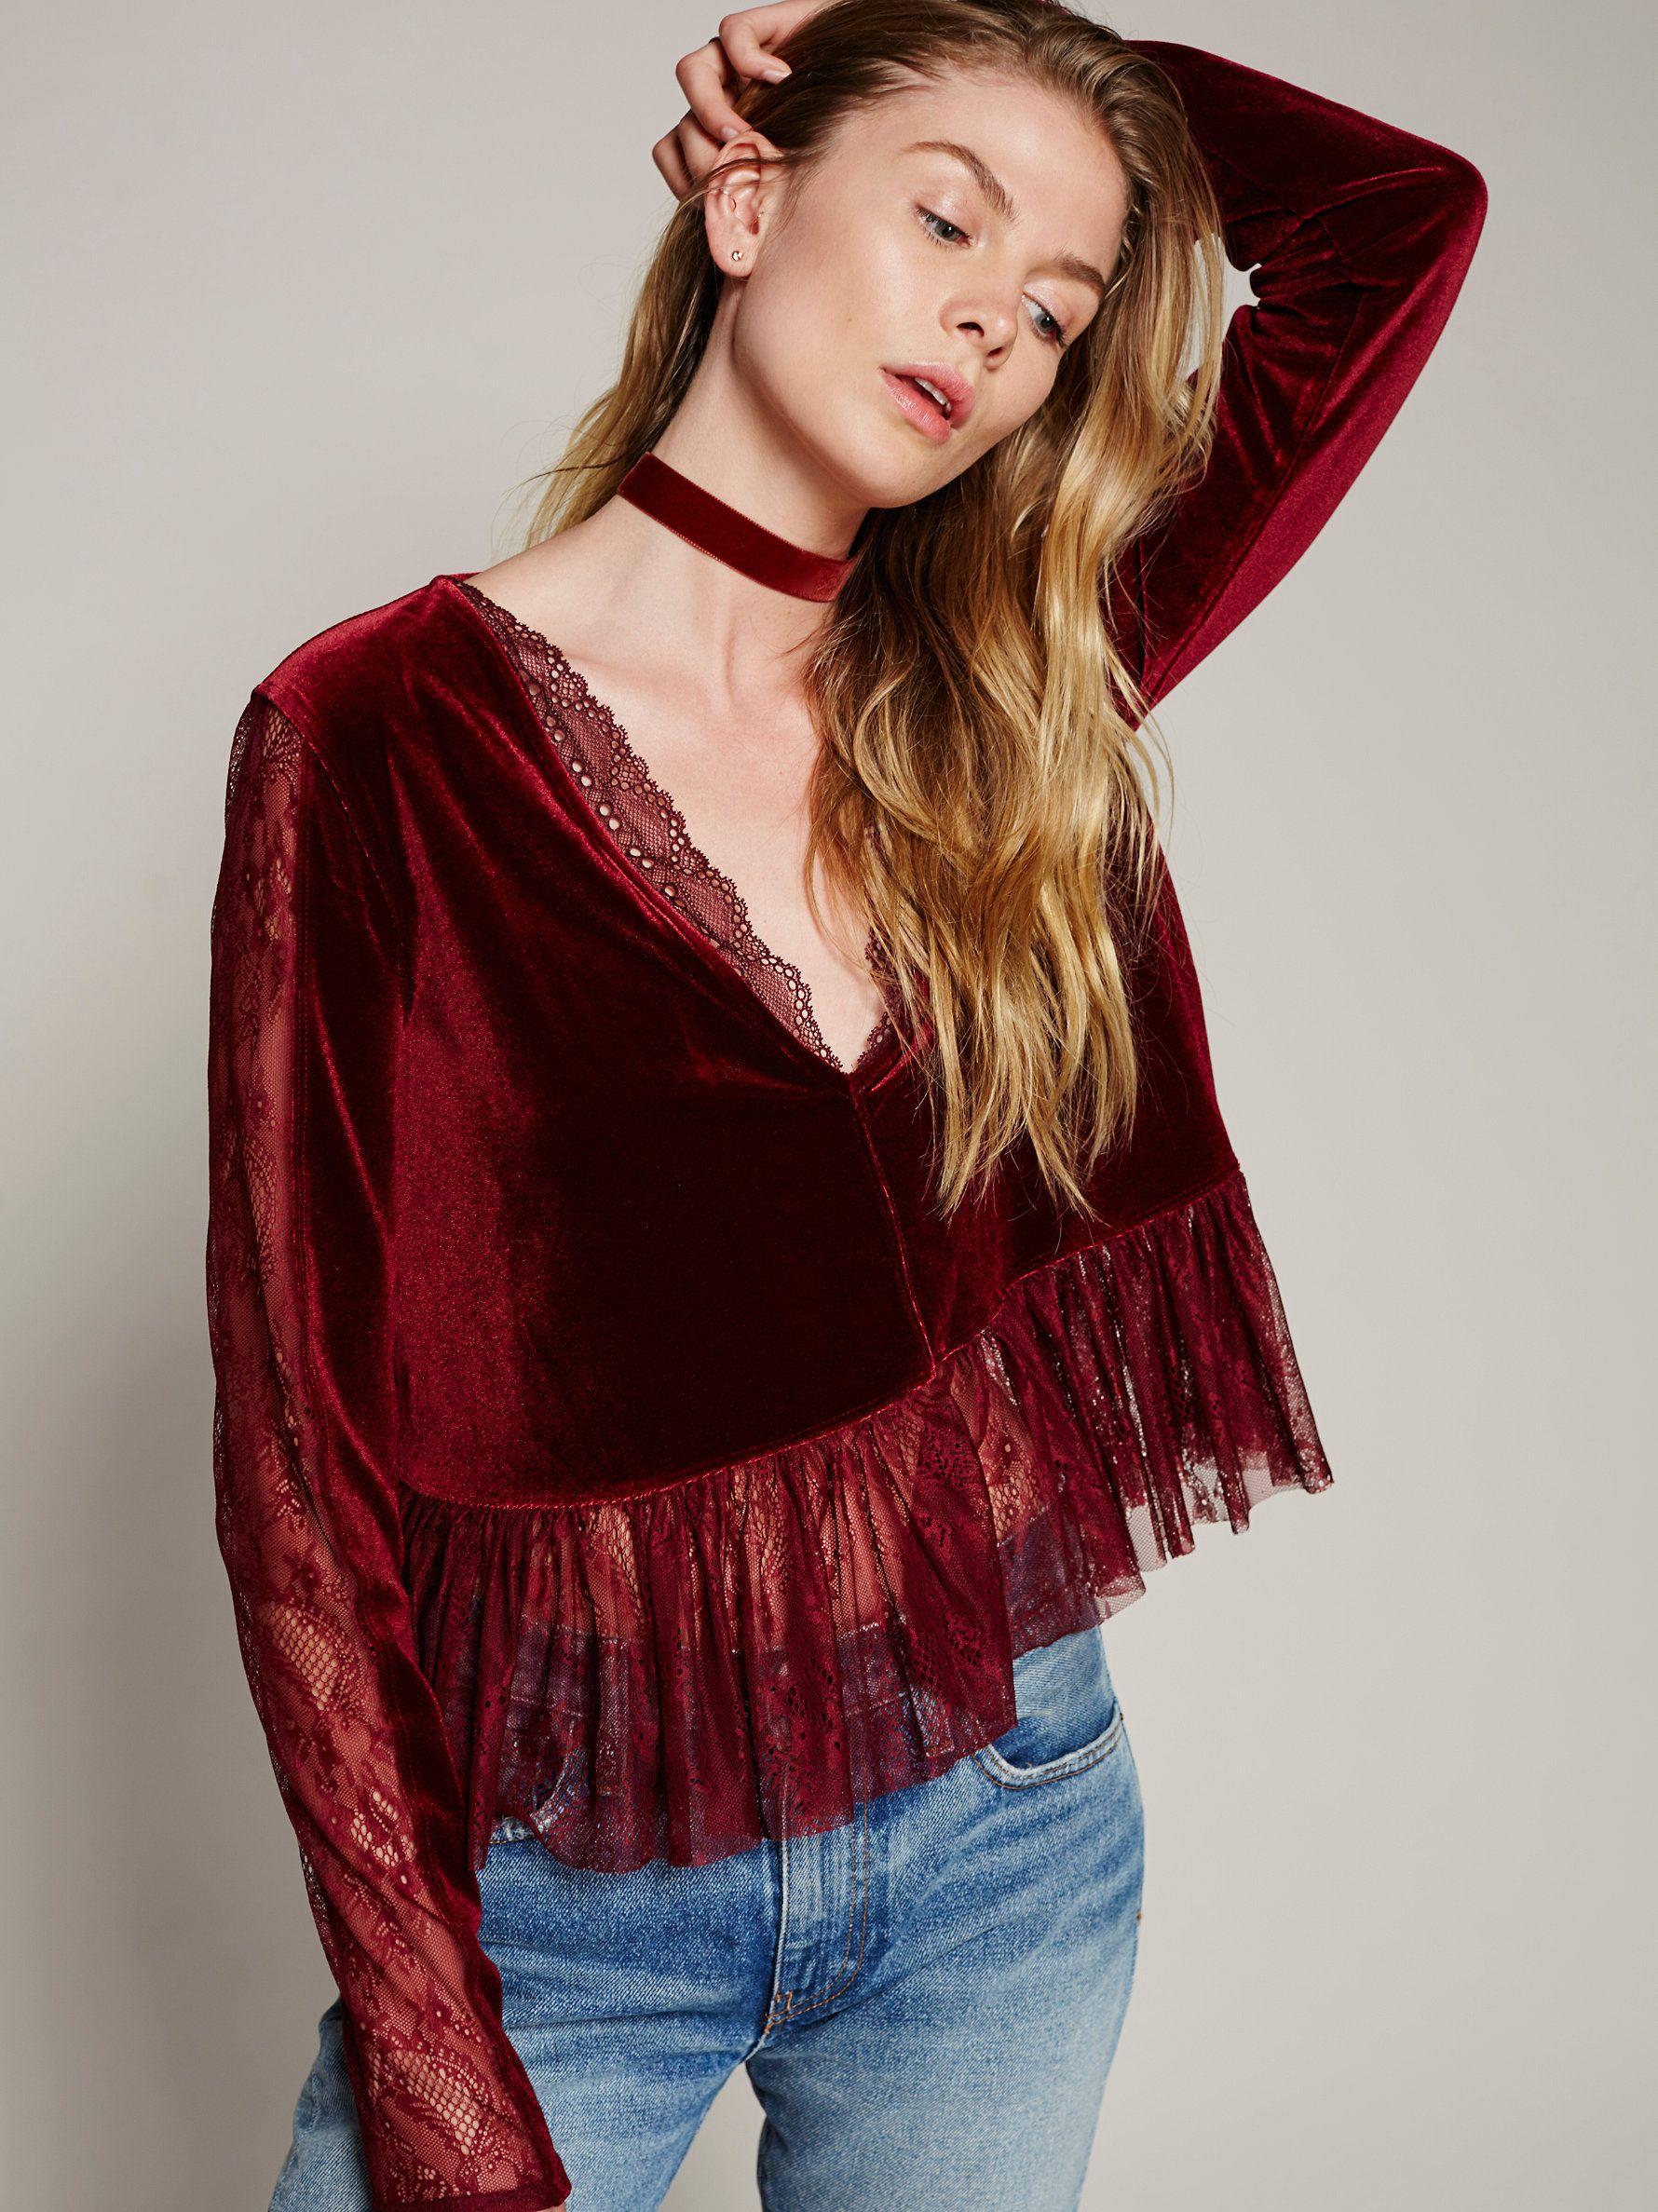 21f8522e8a8849 Lolita Top at Free People Clothing Boutique